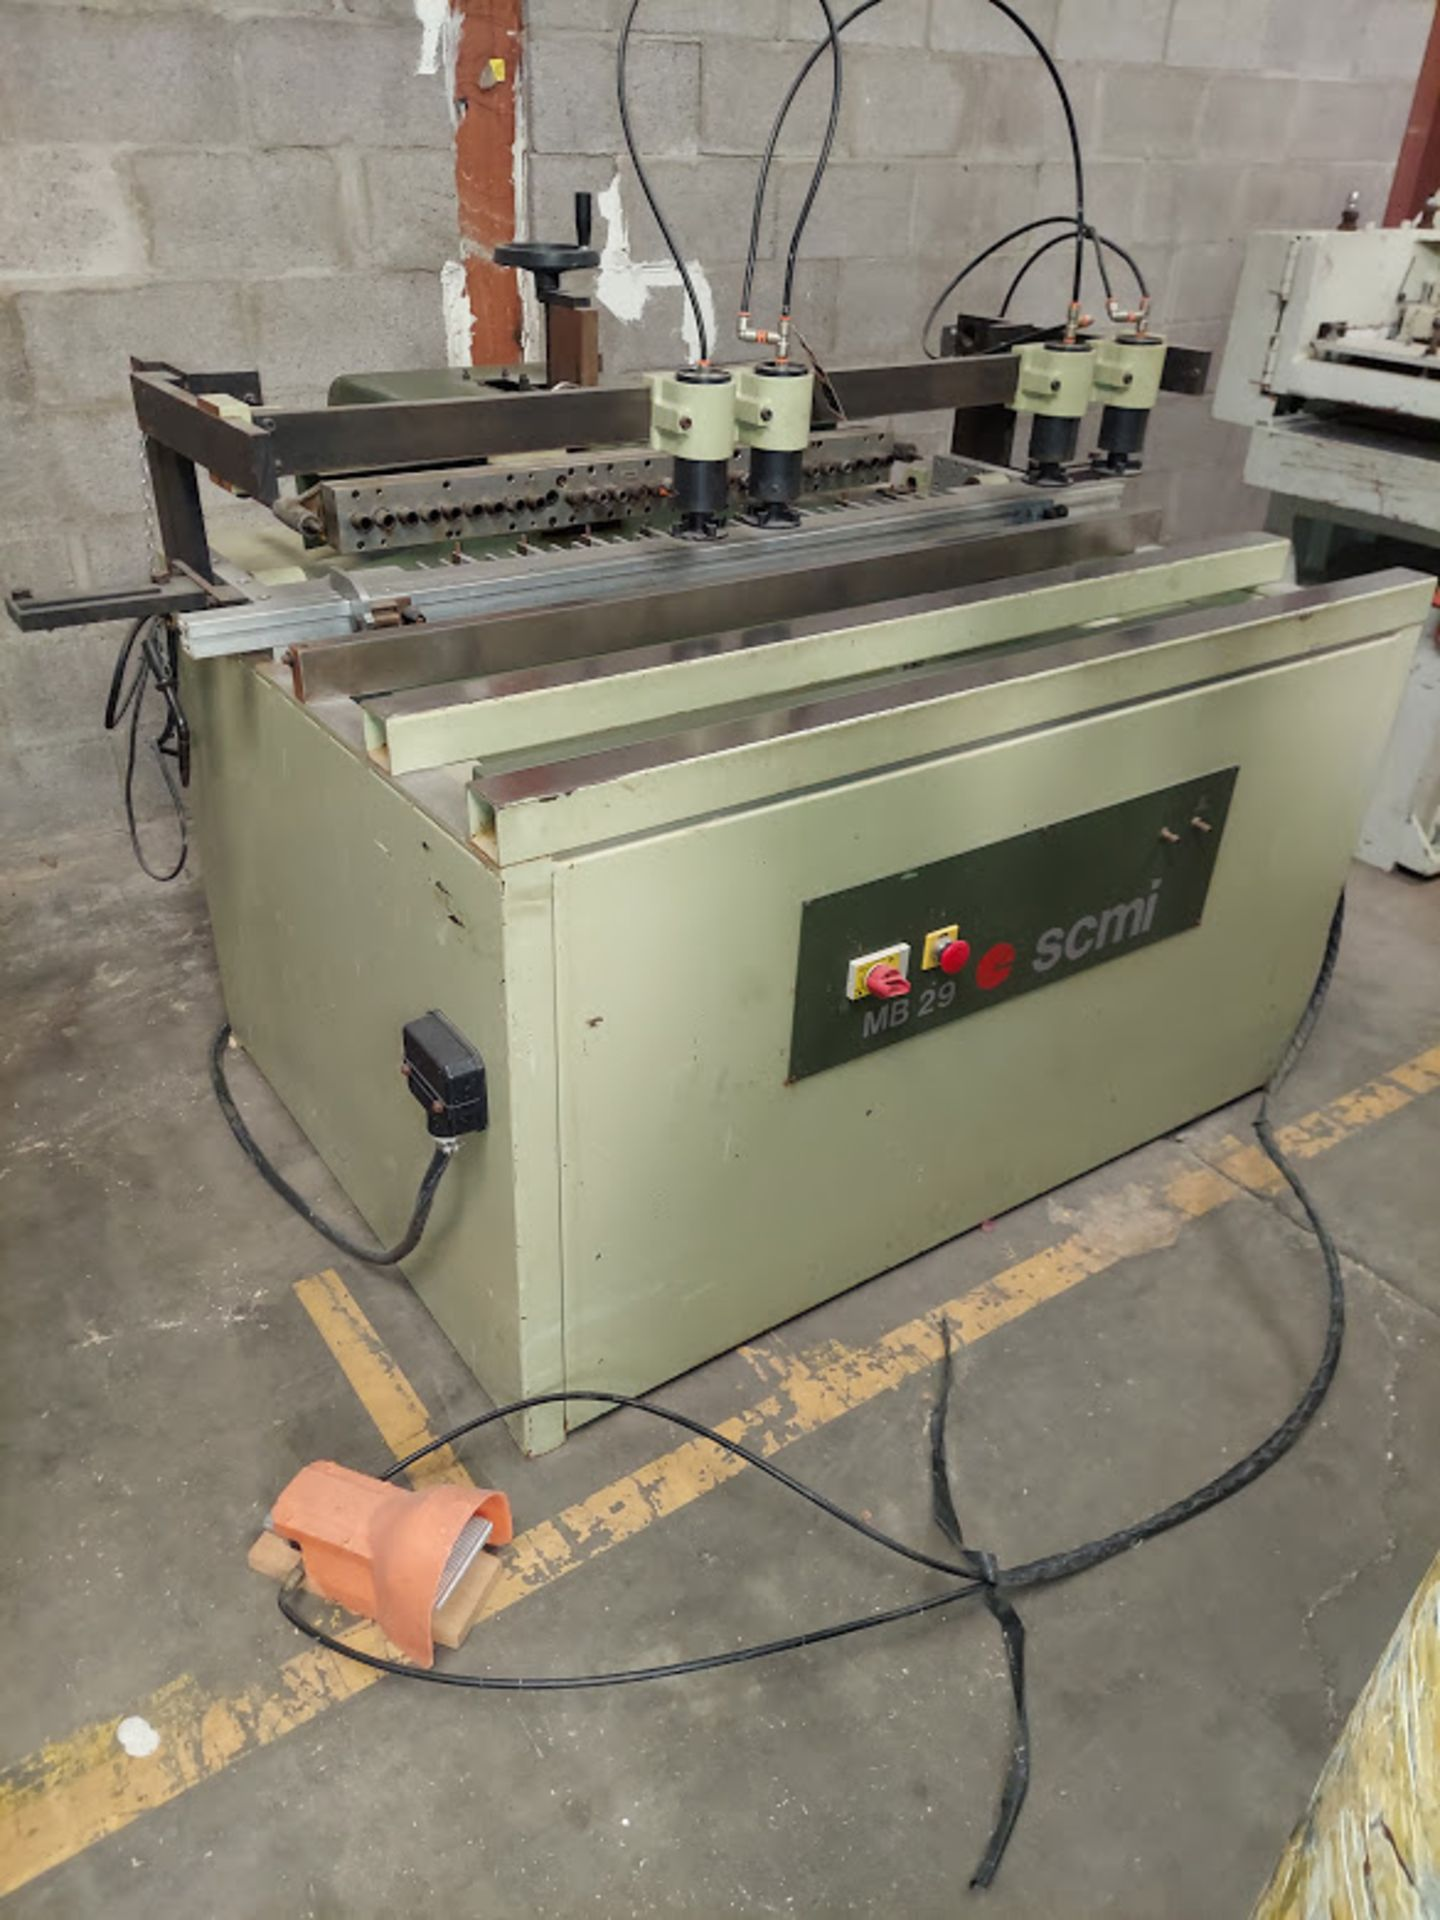 SCMI Construction Line Boring Machine, Model #MB29, 29 Spindles, 230 Volts 3 Phase